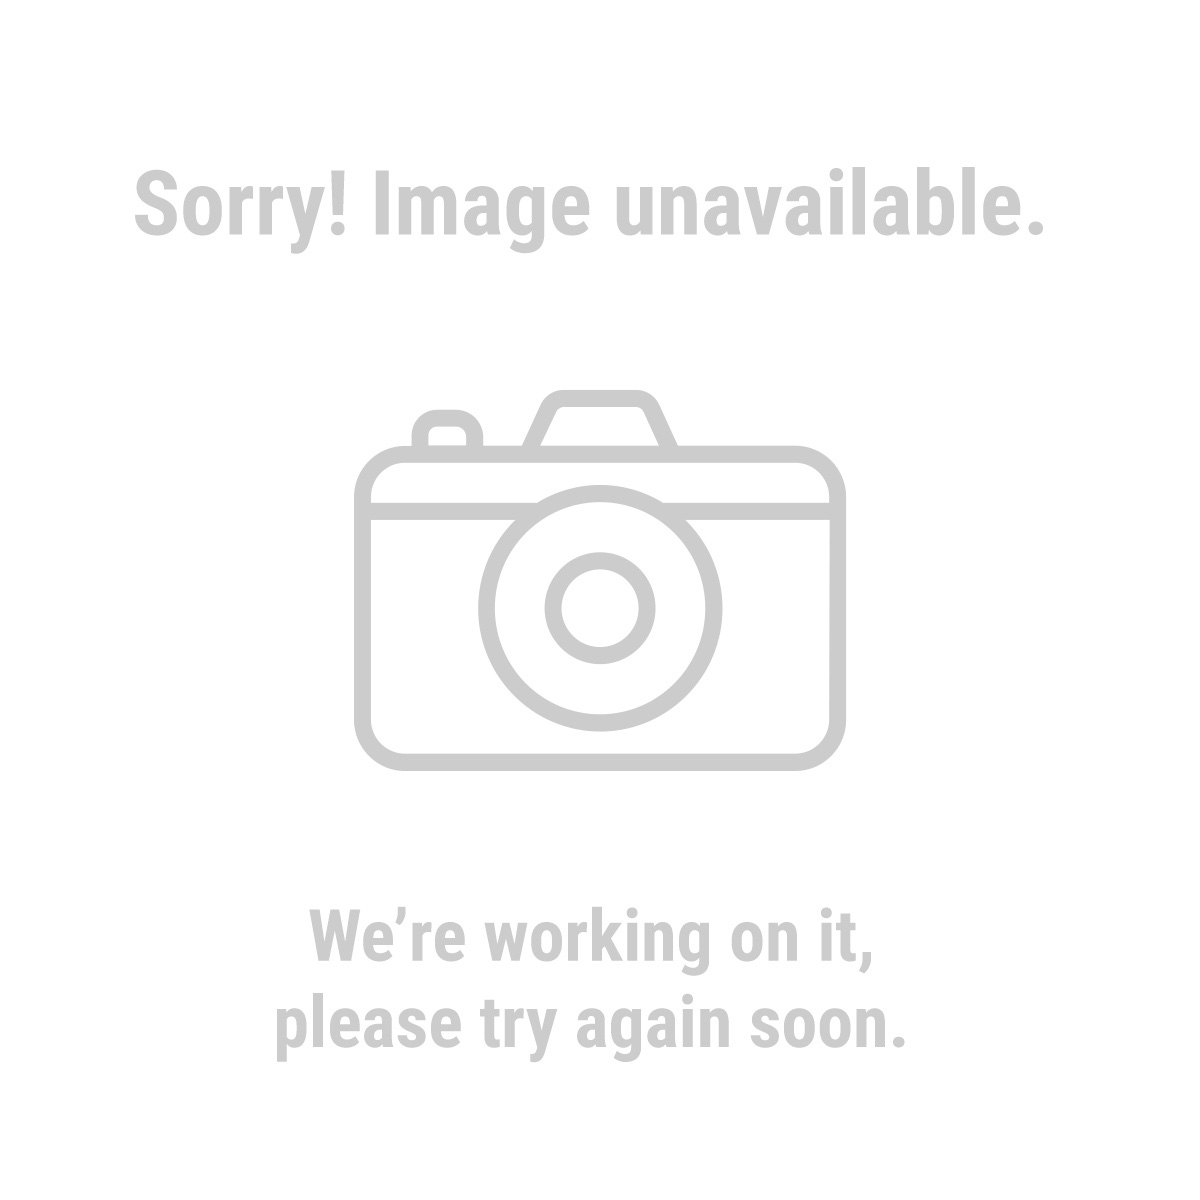 Central Forge 6989 10 Piece Diamond Needle File Set